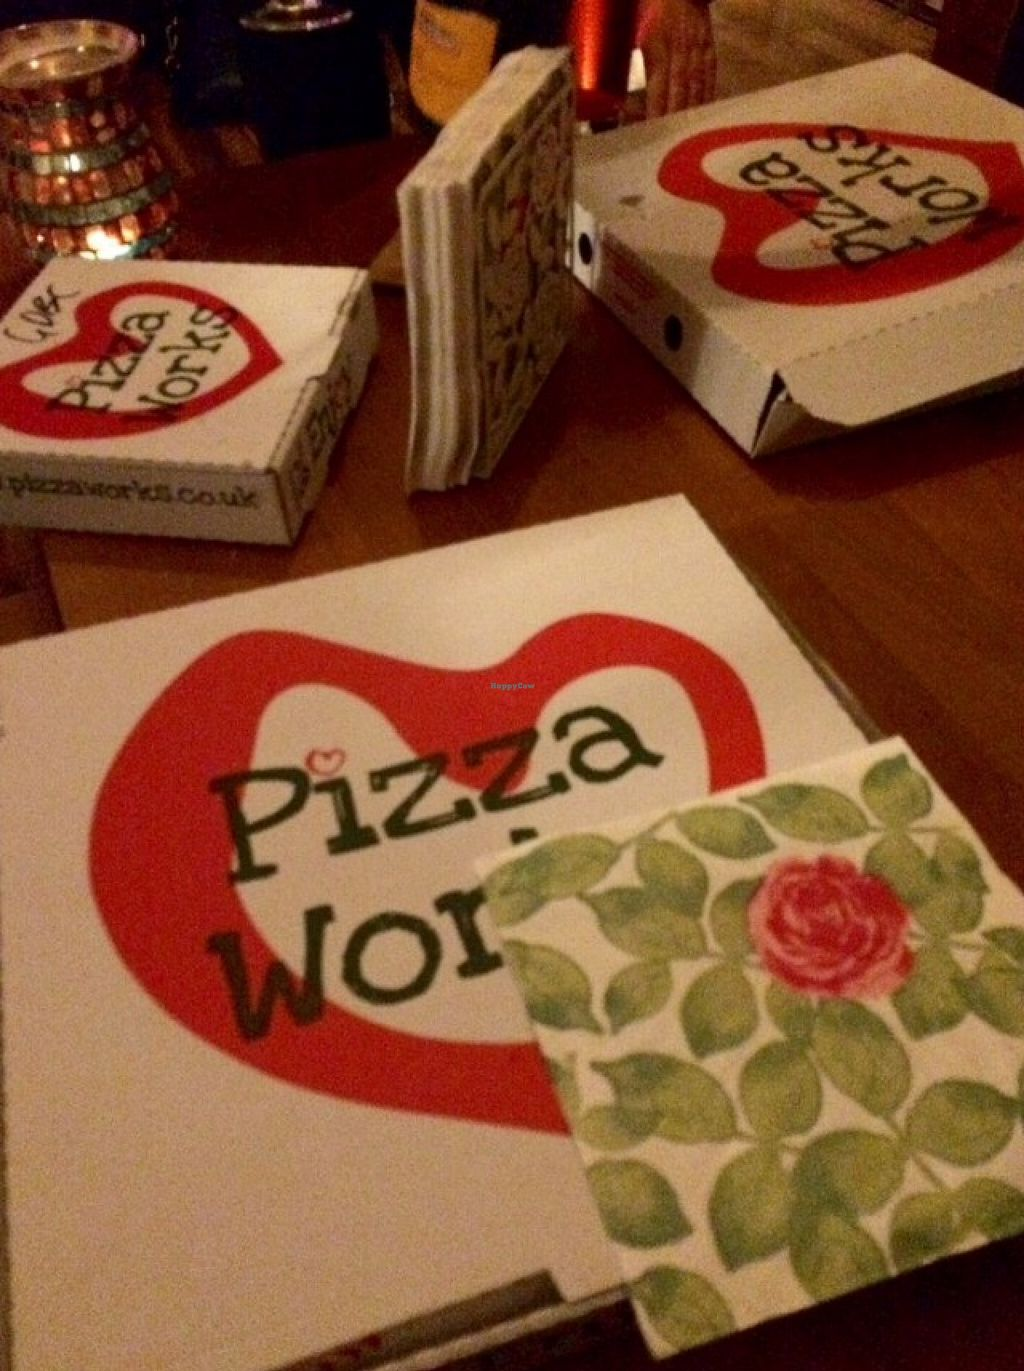 """Photo of PizzaWorks  by <a href=""""/members/profile/CiaraSlevin"""">CiaraSlevin</a> <br/>PizzaWorks  <br/> January 30, 2016  - <a href='/contact/abuse/image/68989/134218'>Report</a>"""